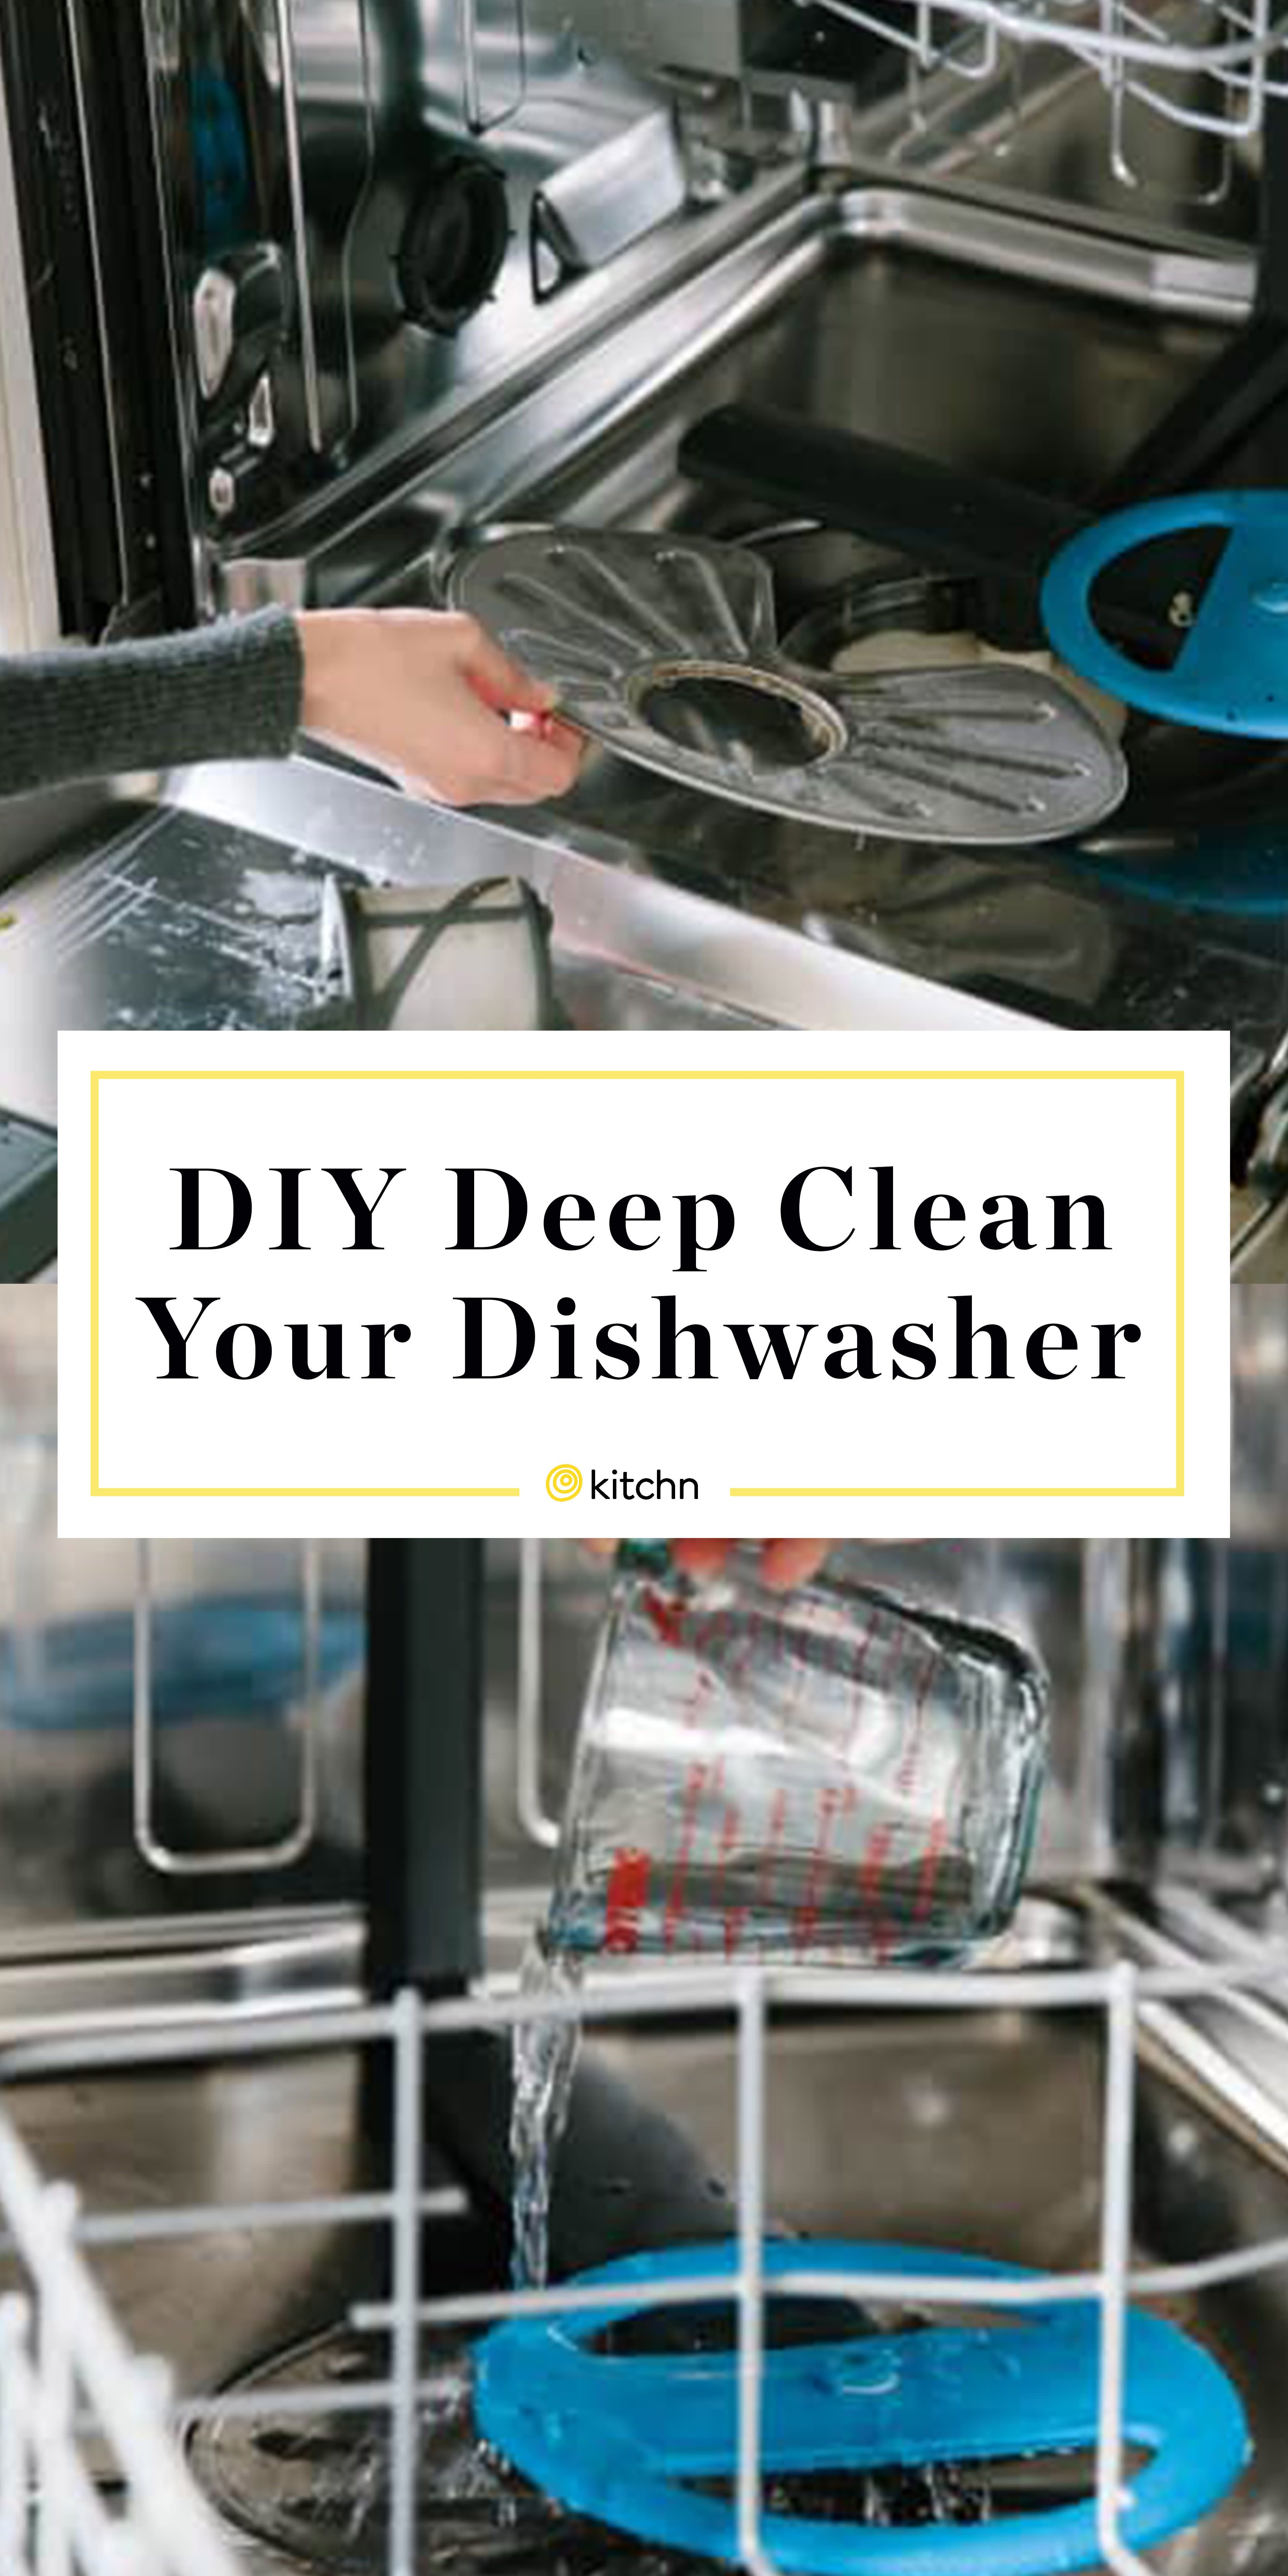 How To Clean A Dishwasher Clean Dishwasher Cleaning Your Dishwasher House Cleaning Tips